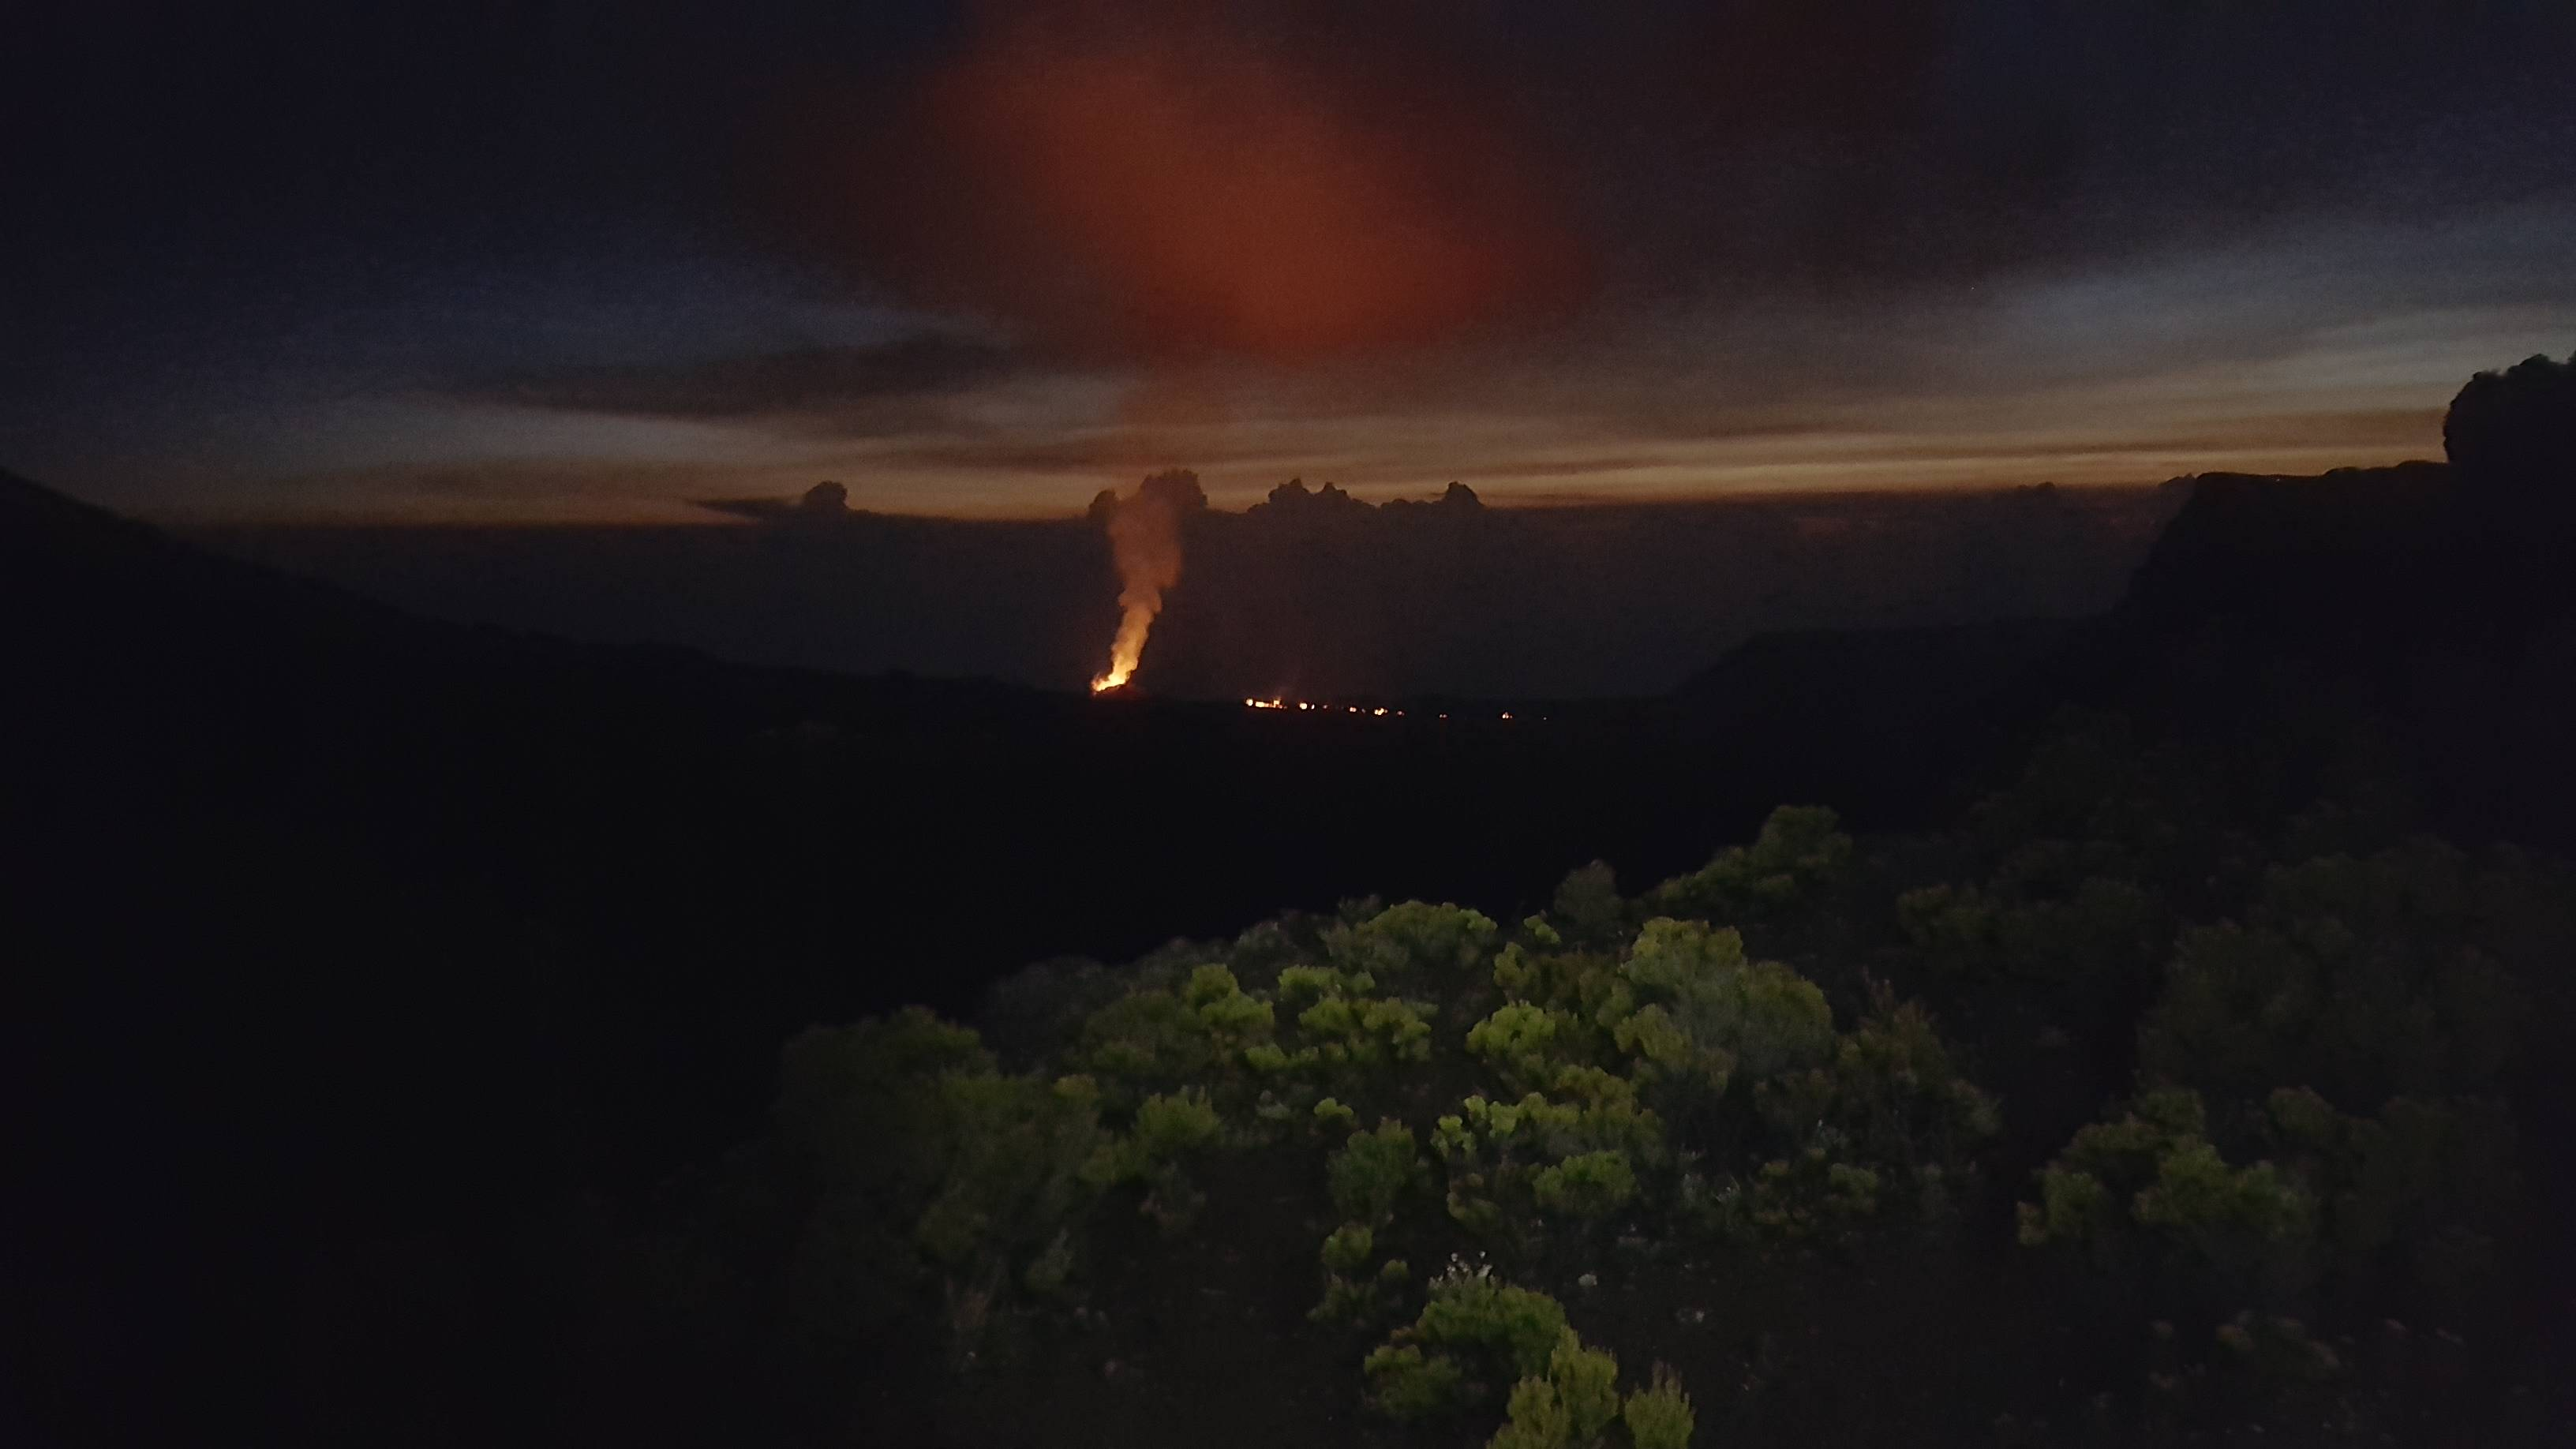 Photo 1: Éruption du Piton de la Fournaise